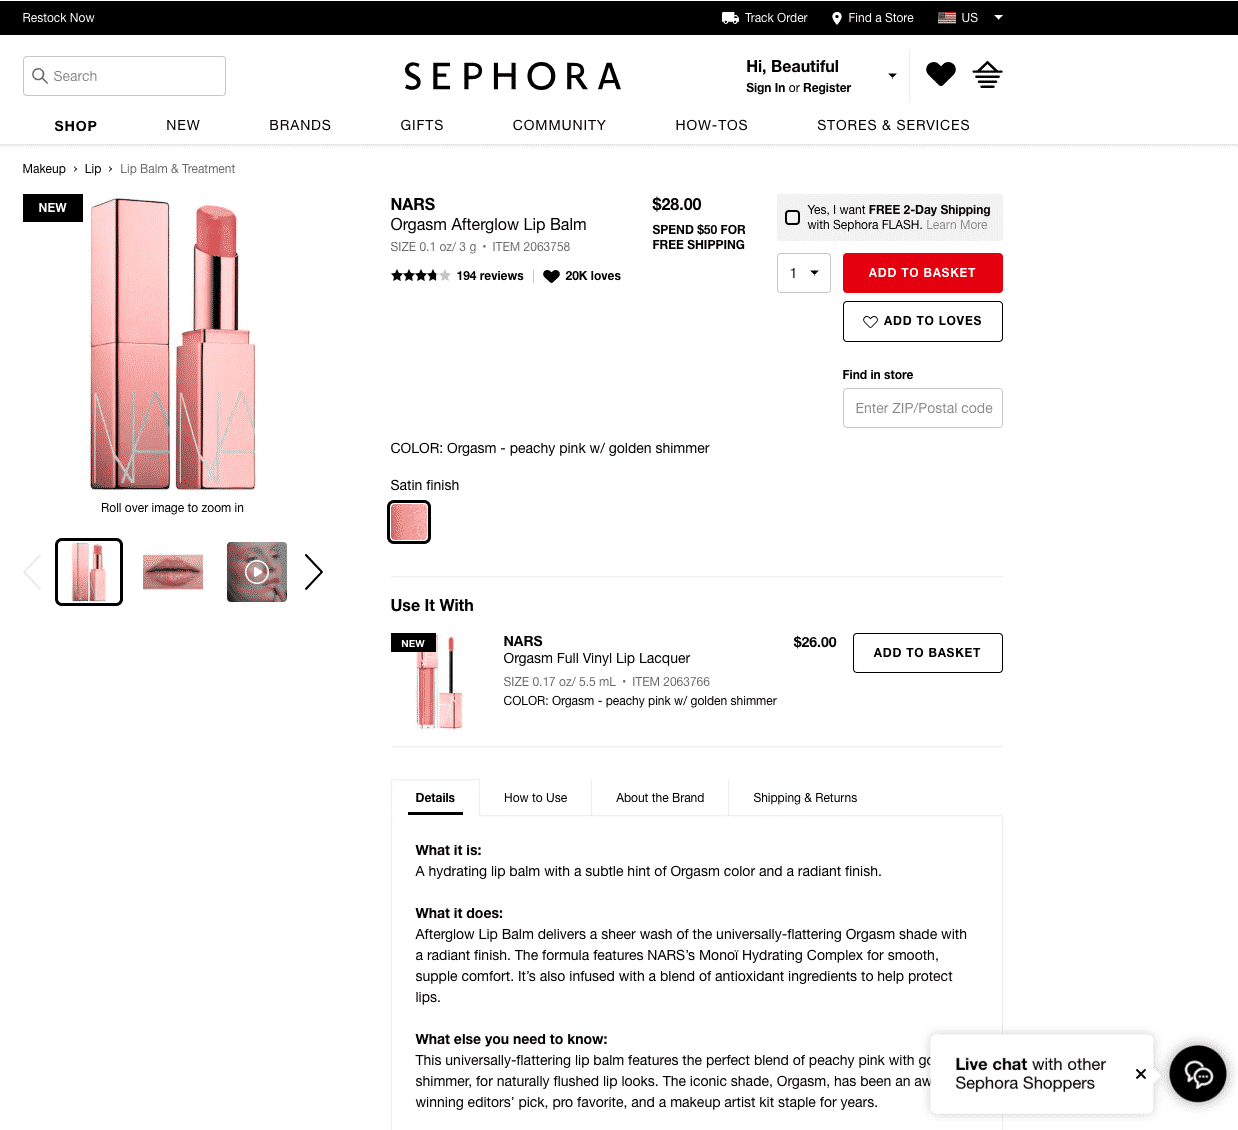 Sephora Online marketing strategies